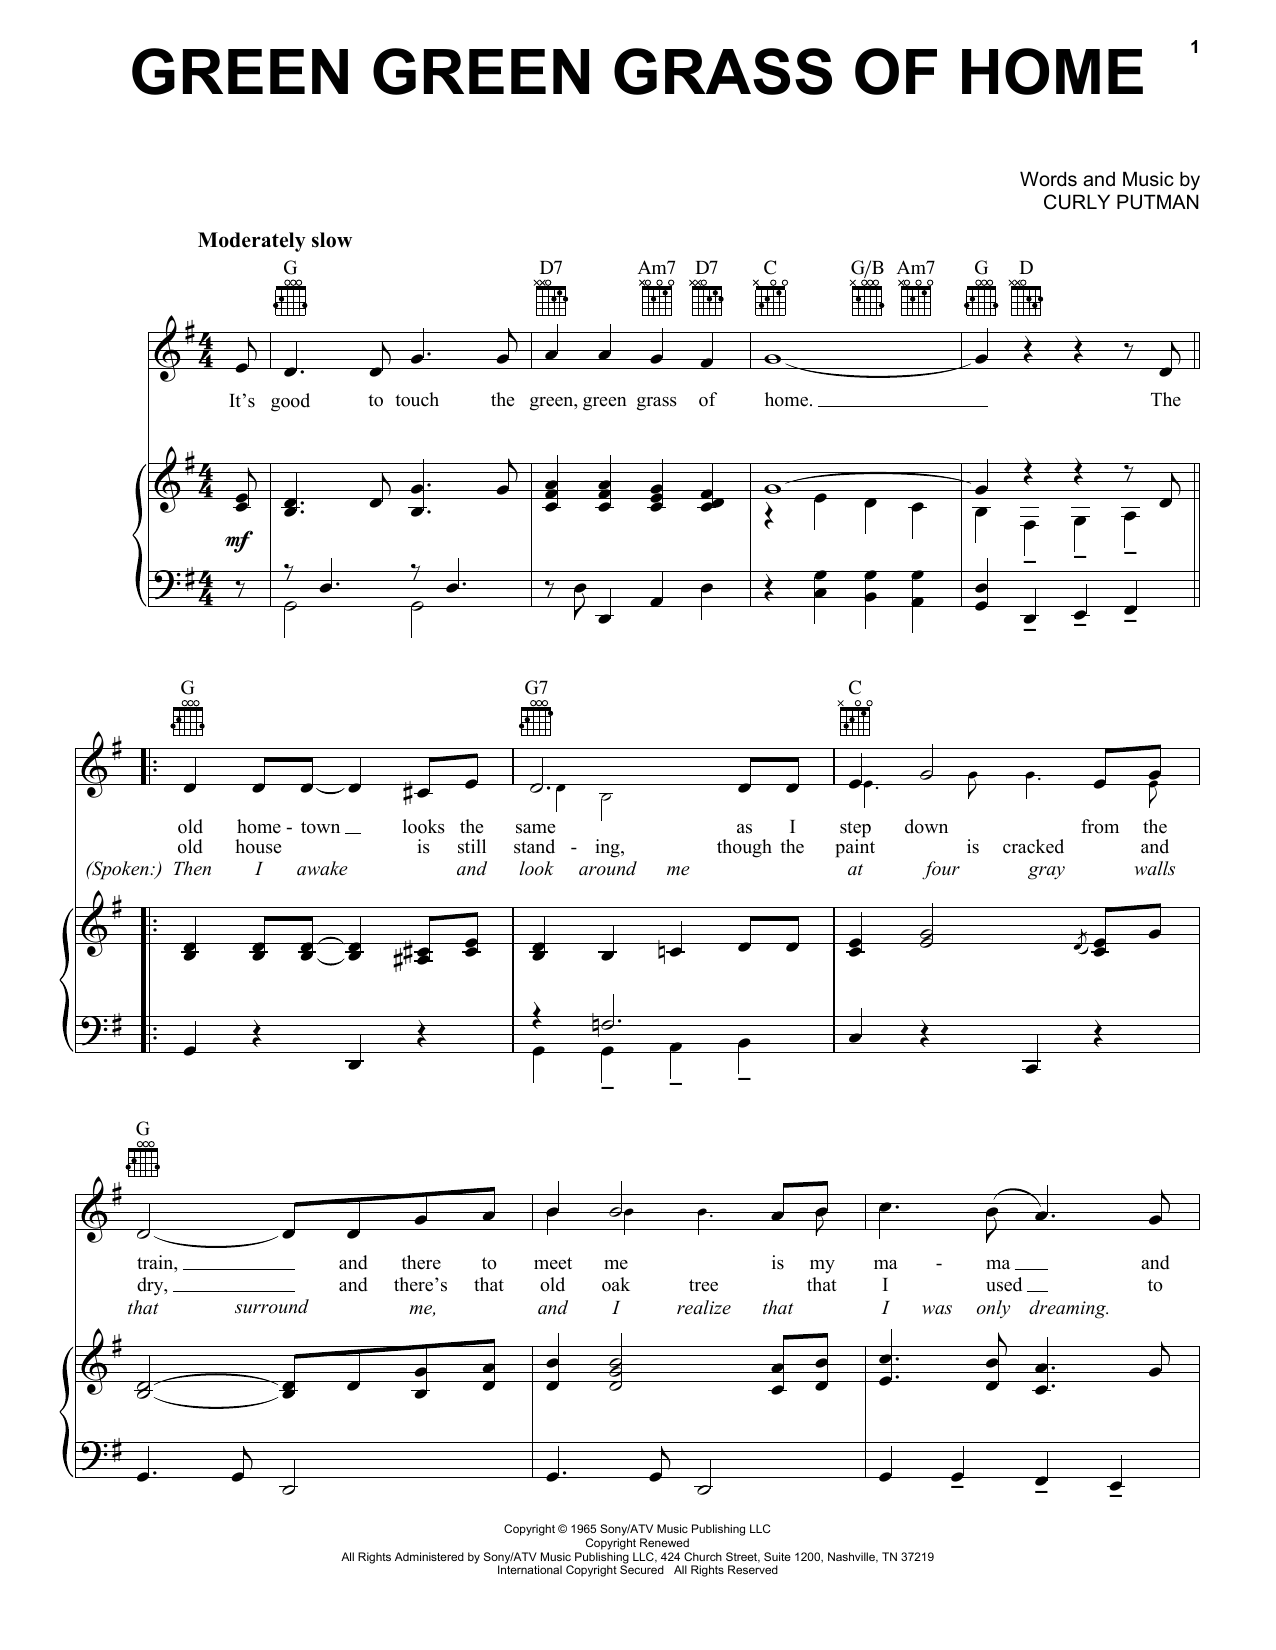 Porter Wagoner Green Green Grass Of Home sheet music notes and chords. Download Printable PDF.